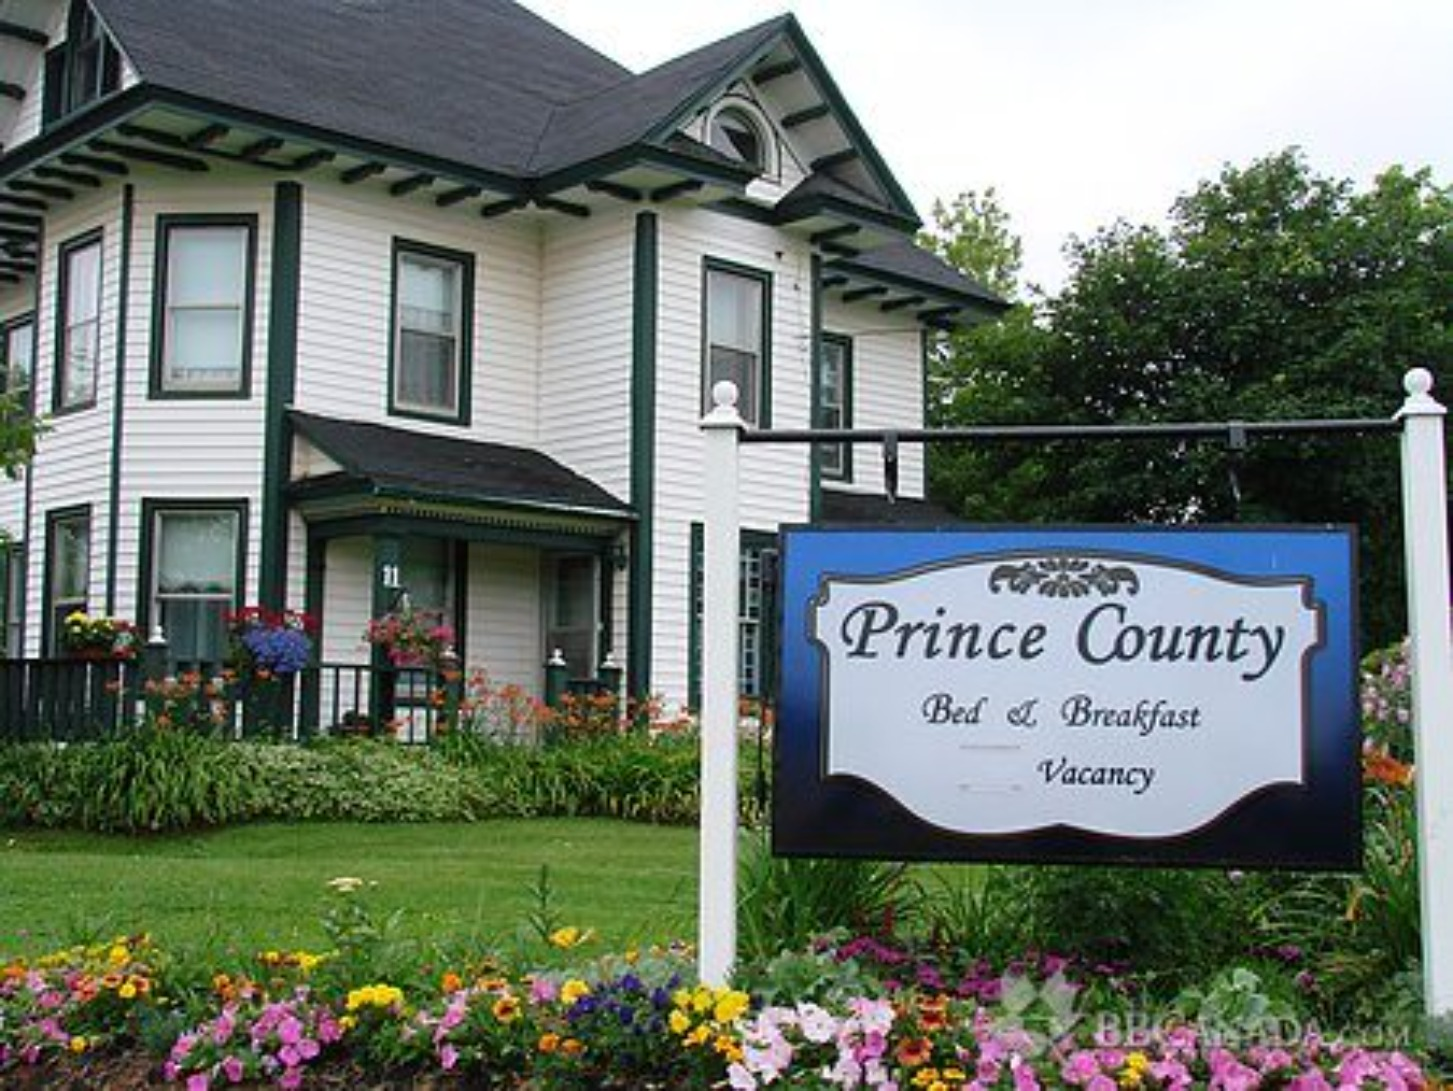 A sign in front of a house at Prince County Bed & Breakfast.